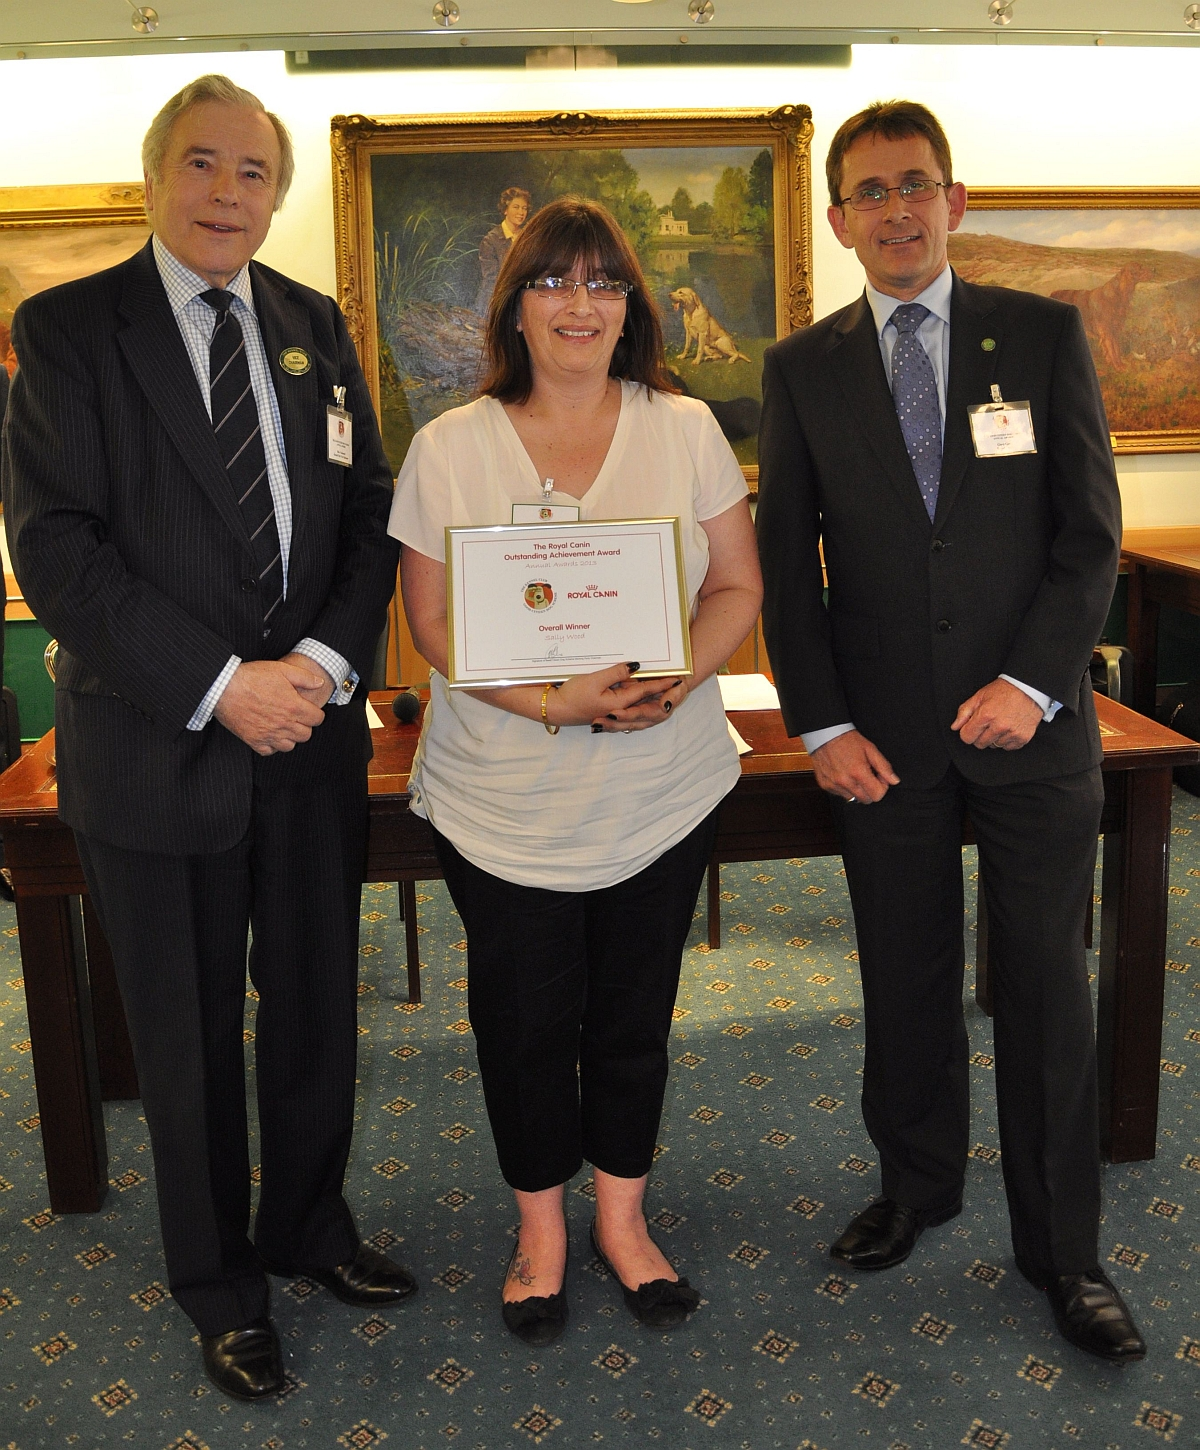 Sally Wood, centre, is pictured collecting her award from Kennel Club vice chairman Mike Townsend, left, and Gary Gray from Royal Canin.